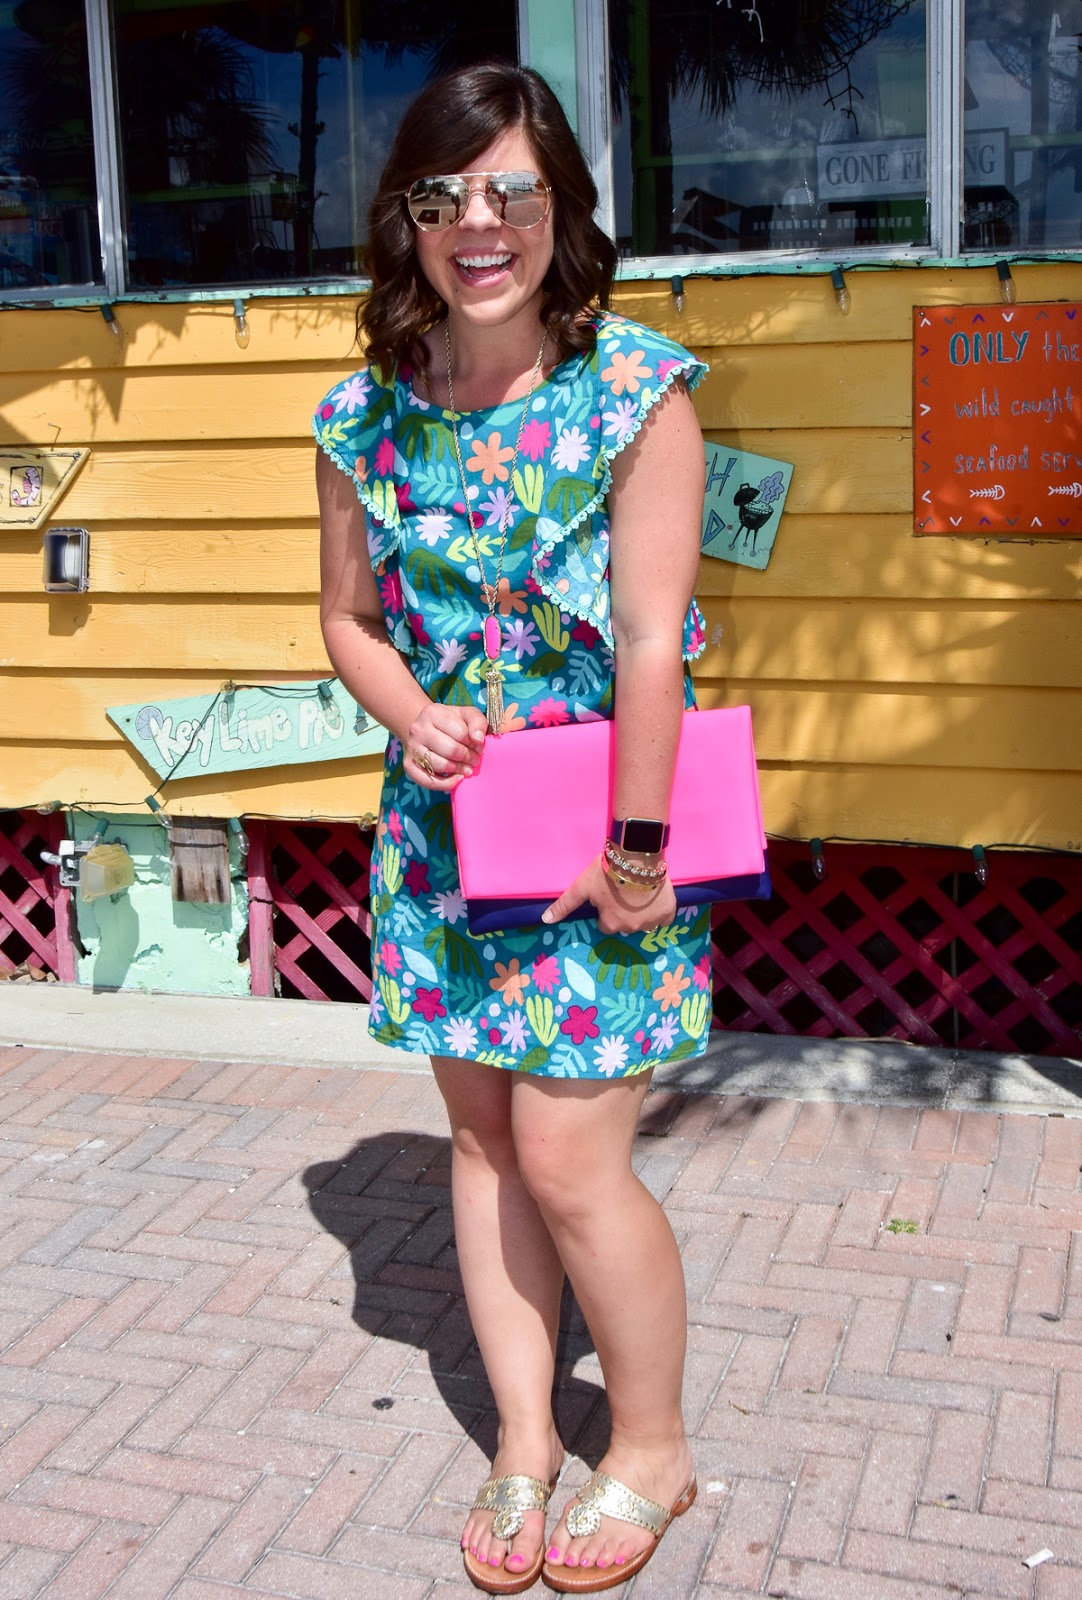 Let's Fiesta! The Perfect Party Dress for Cinco de Mayo!